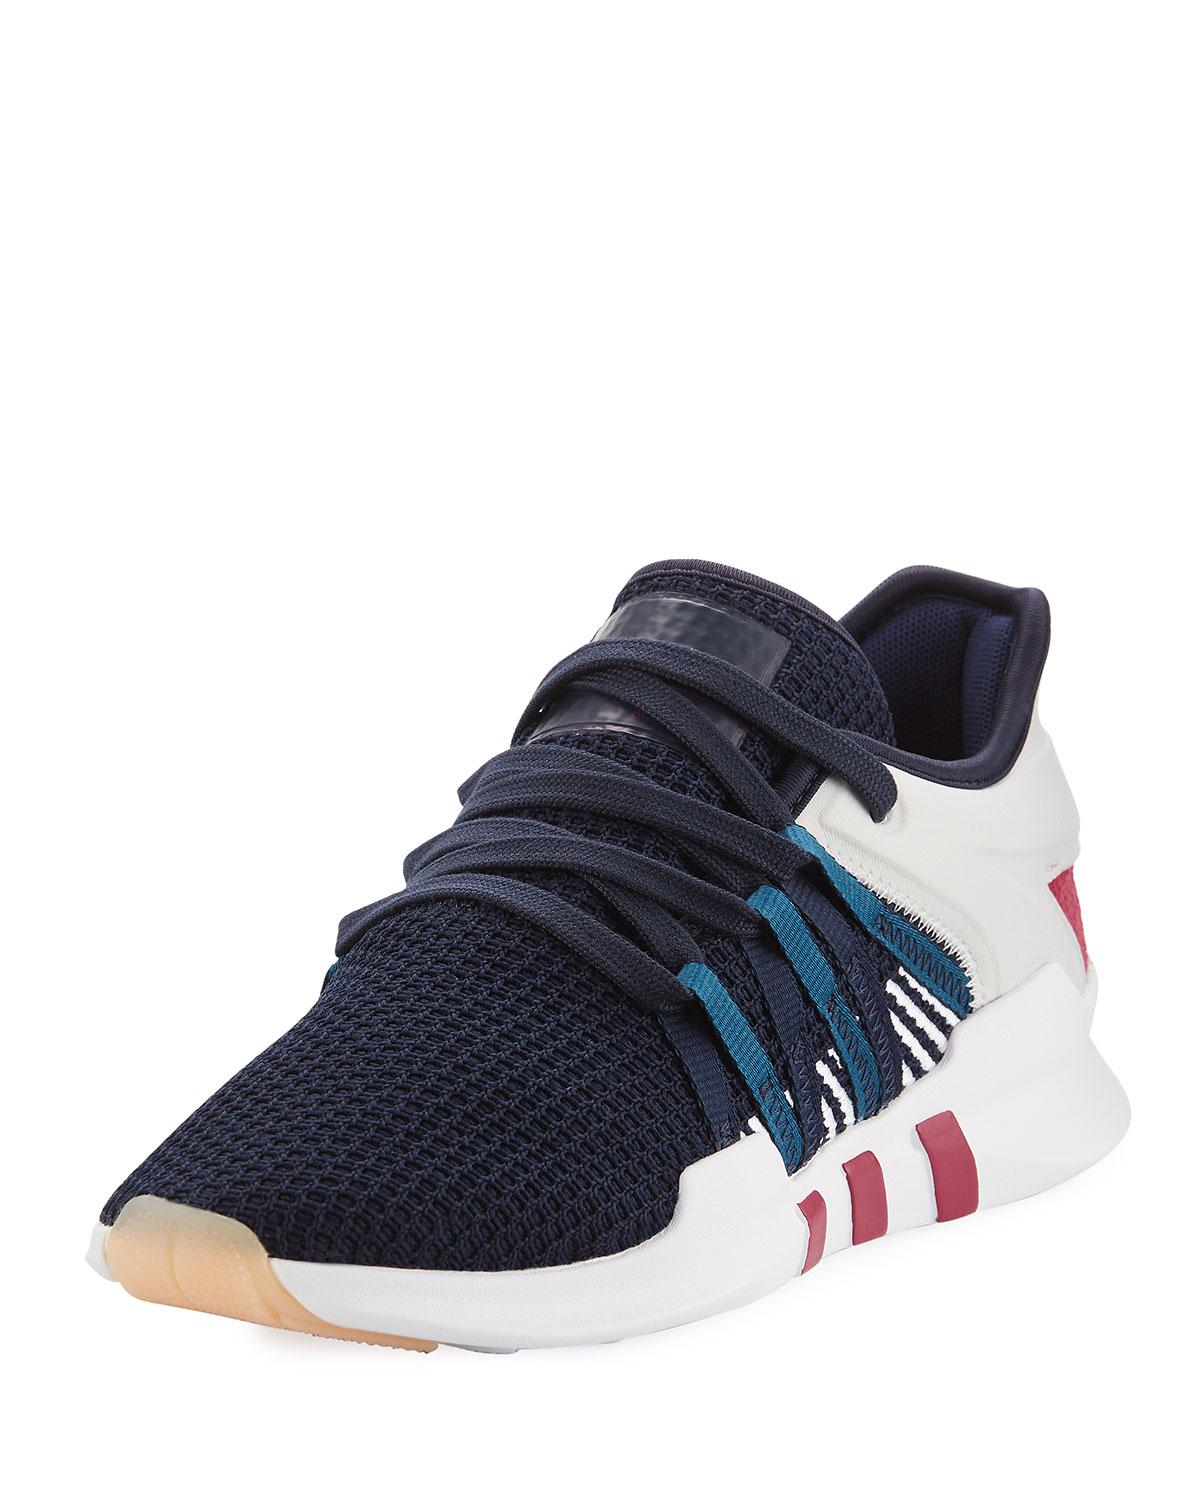 official photos 64a17 8ba35 Lyst - adidas Eqt Racing Adv Sneaker in Blue for Men